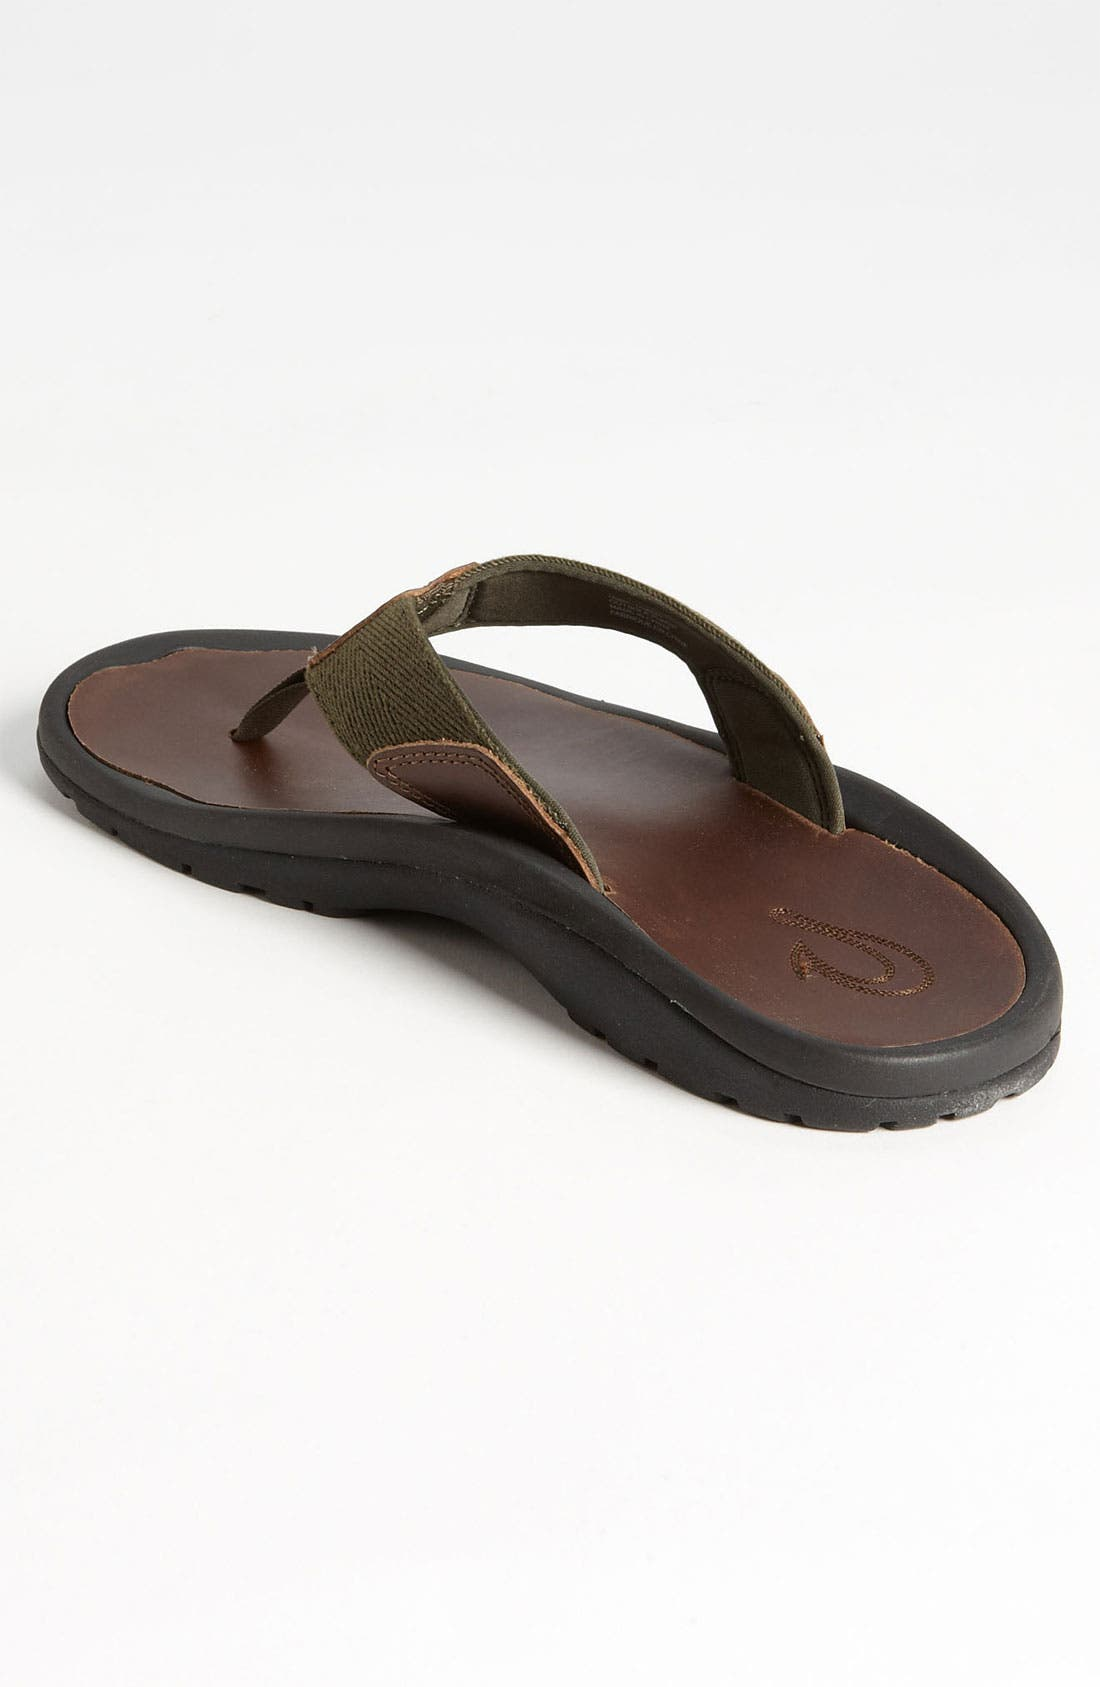 Alternate Image 2  - OluKai 'Kalo' Flip Flop (Men)